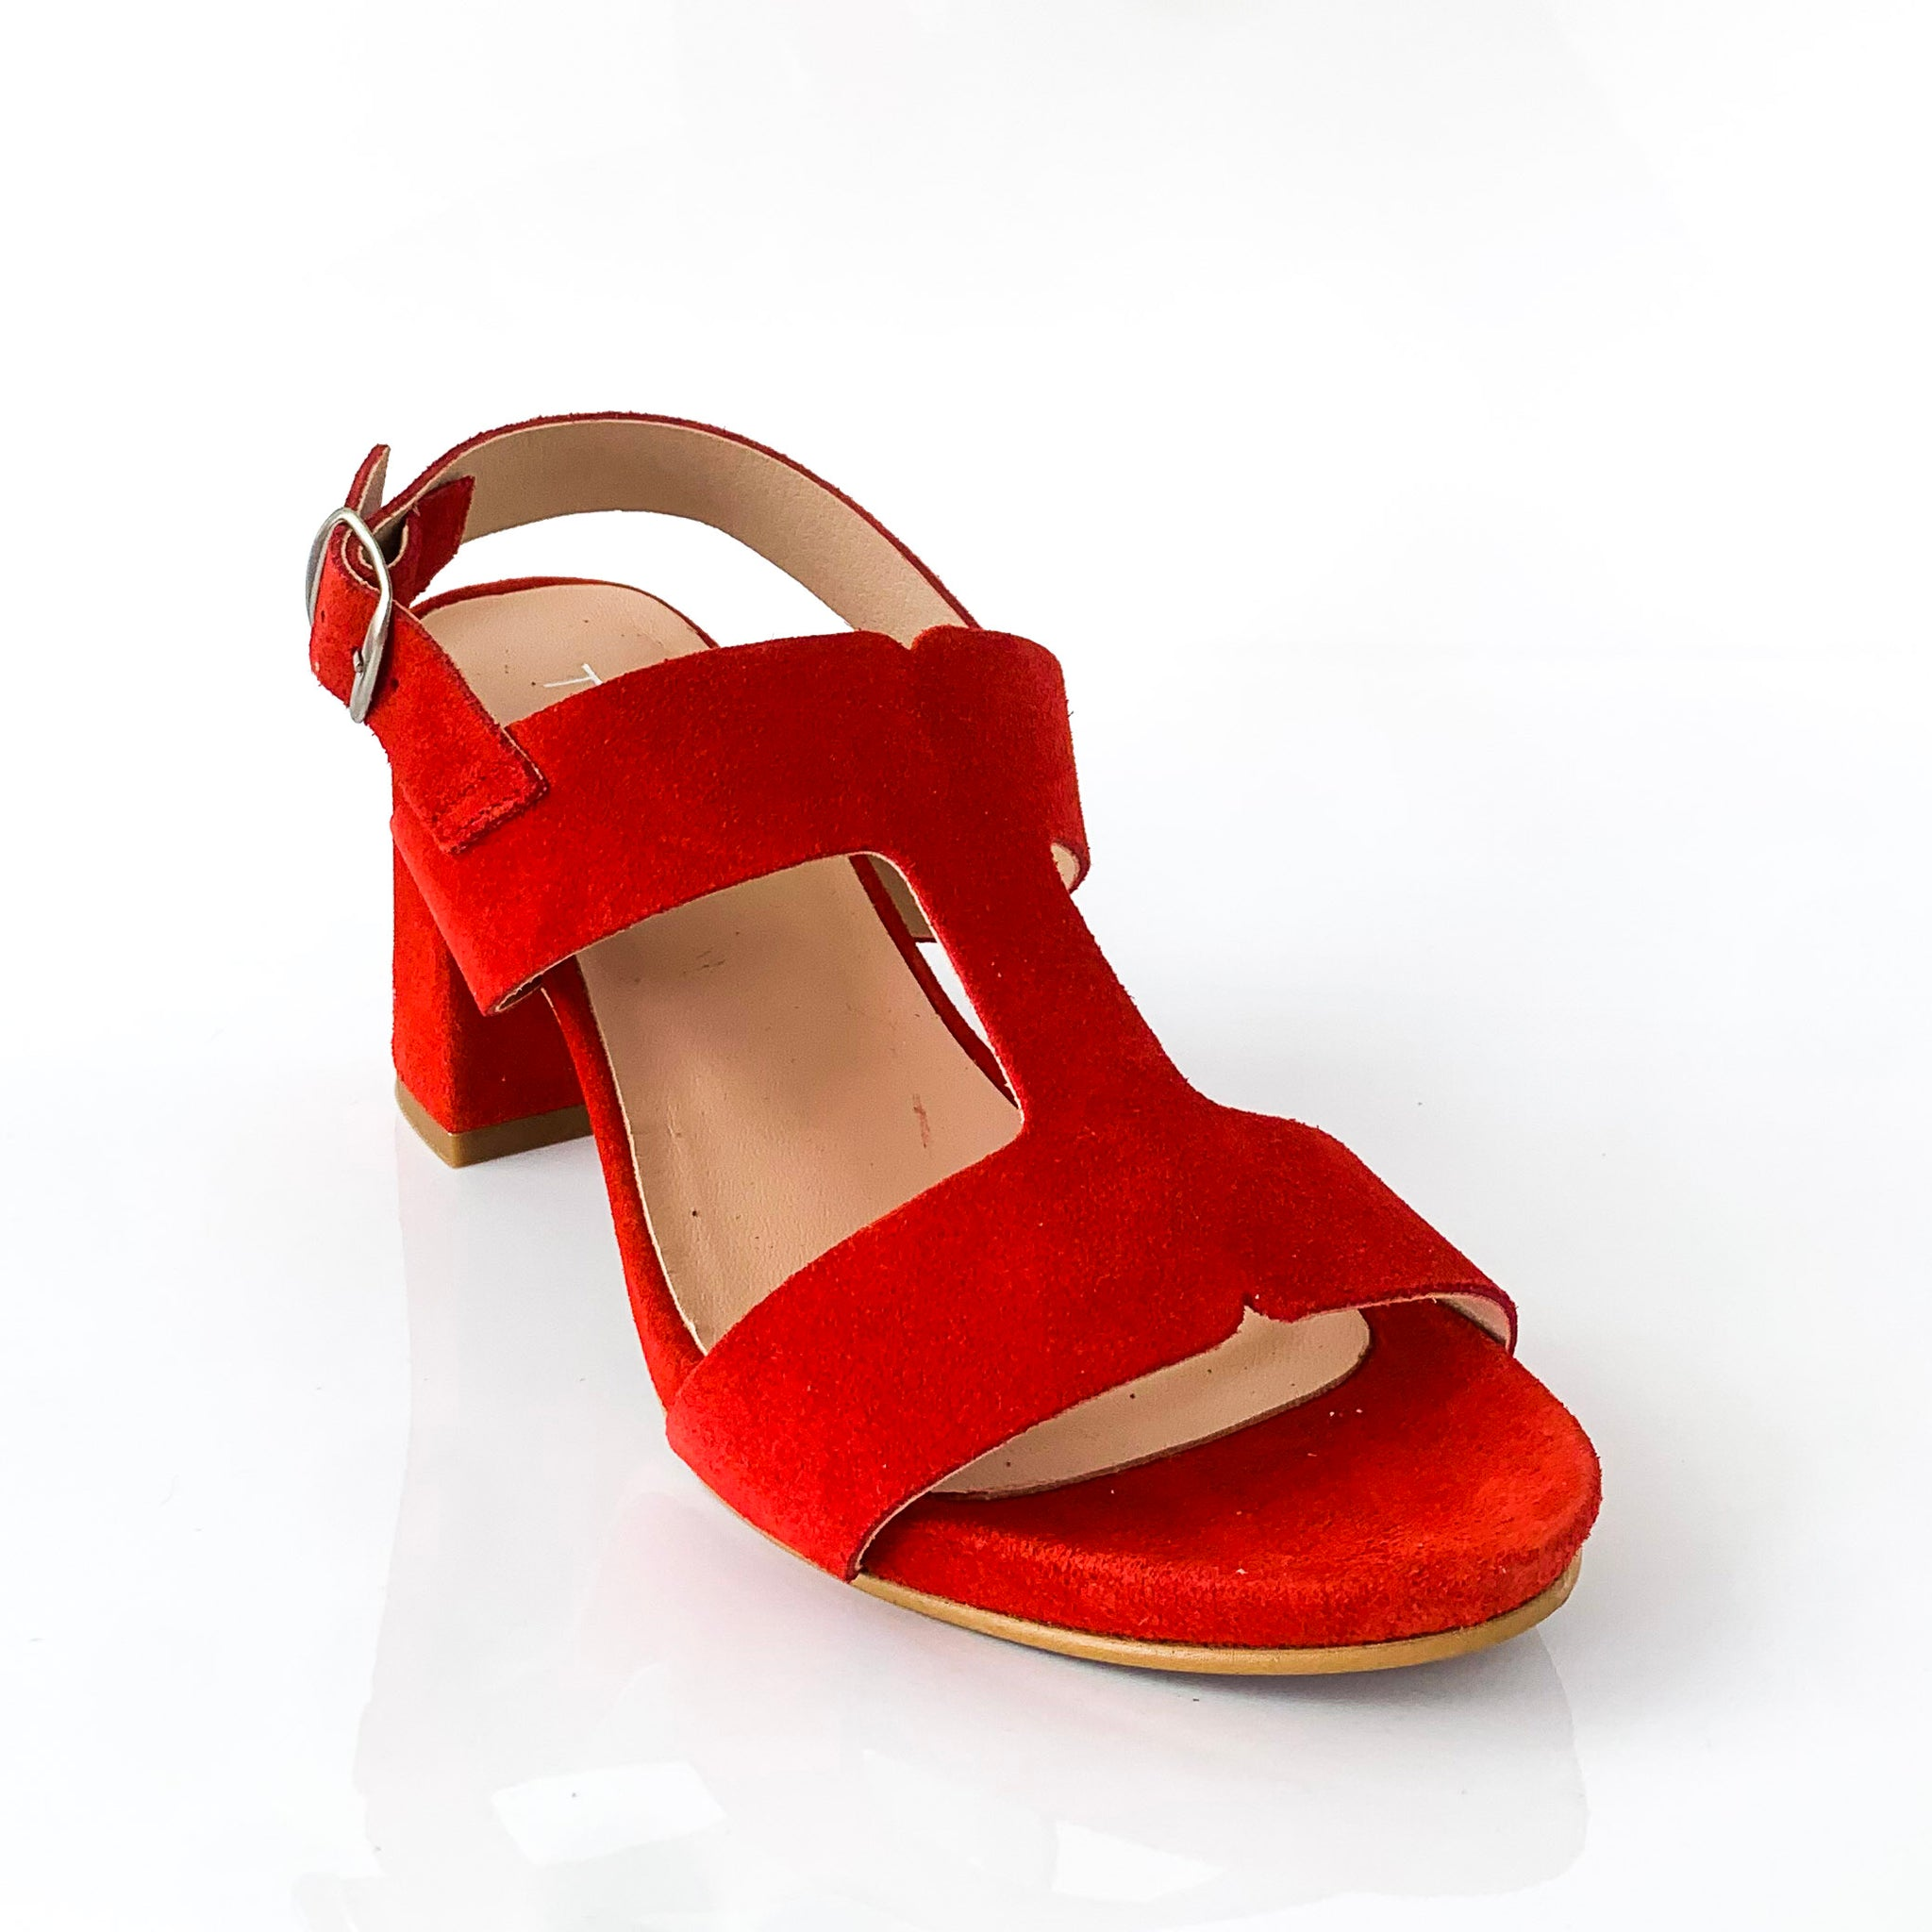 DAWNA | Red Suede Sandals - TrystShoes